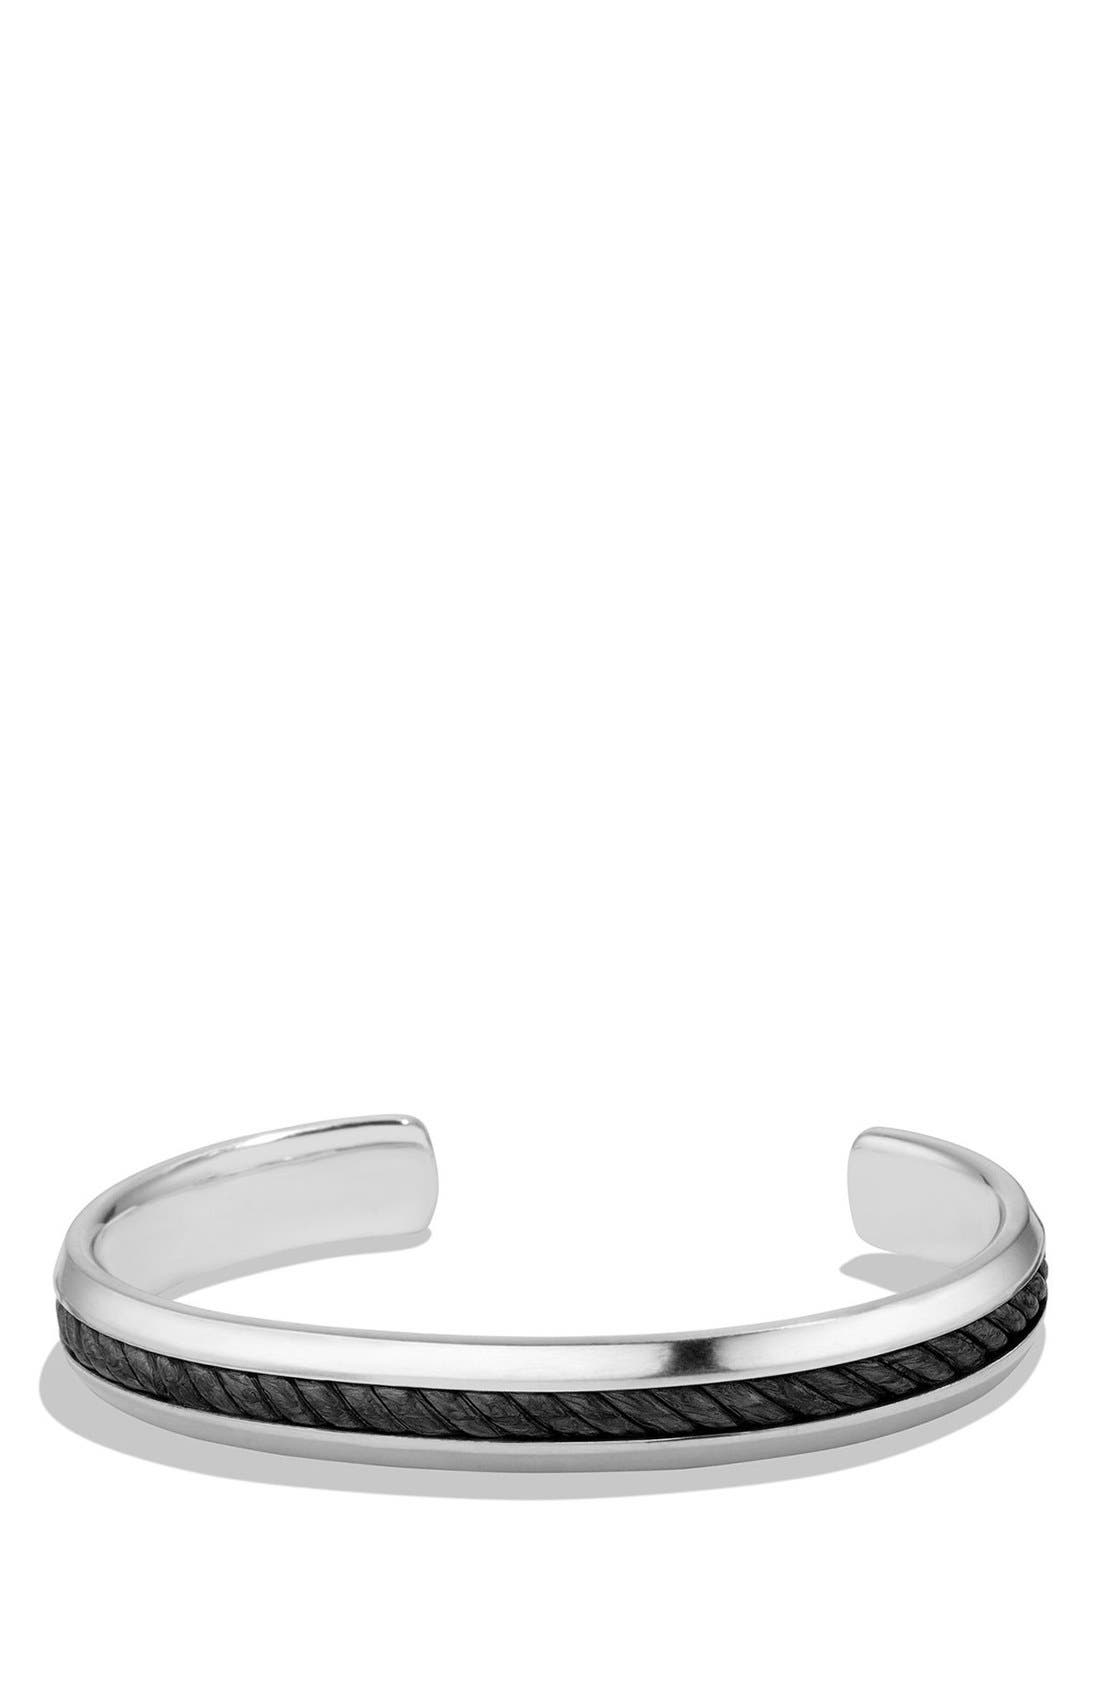 DAVID YURMAN Cable Classics Cuff Bracelet with Forged Carbon Cable